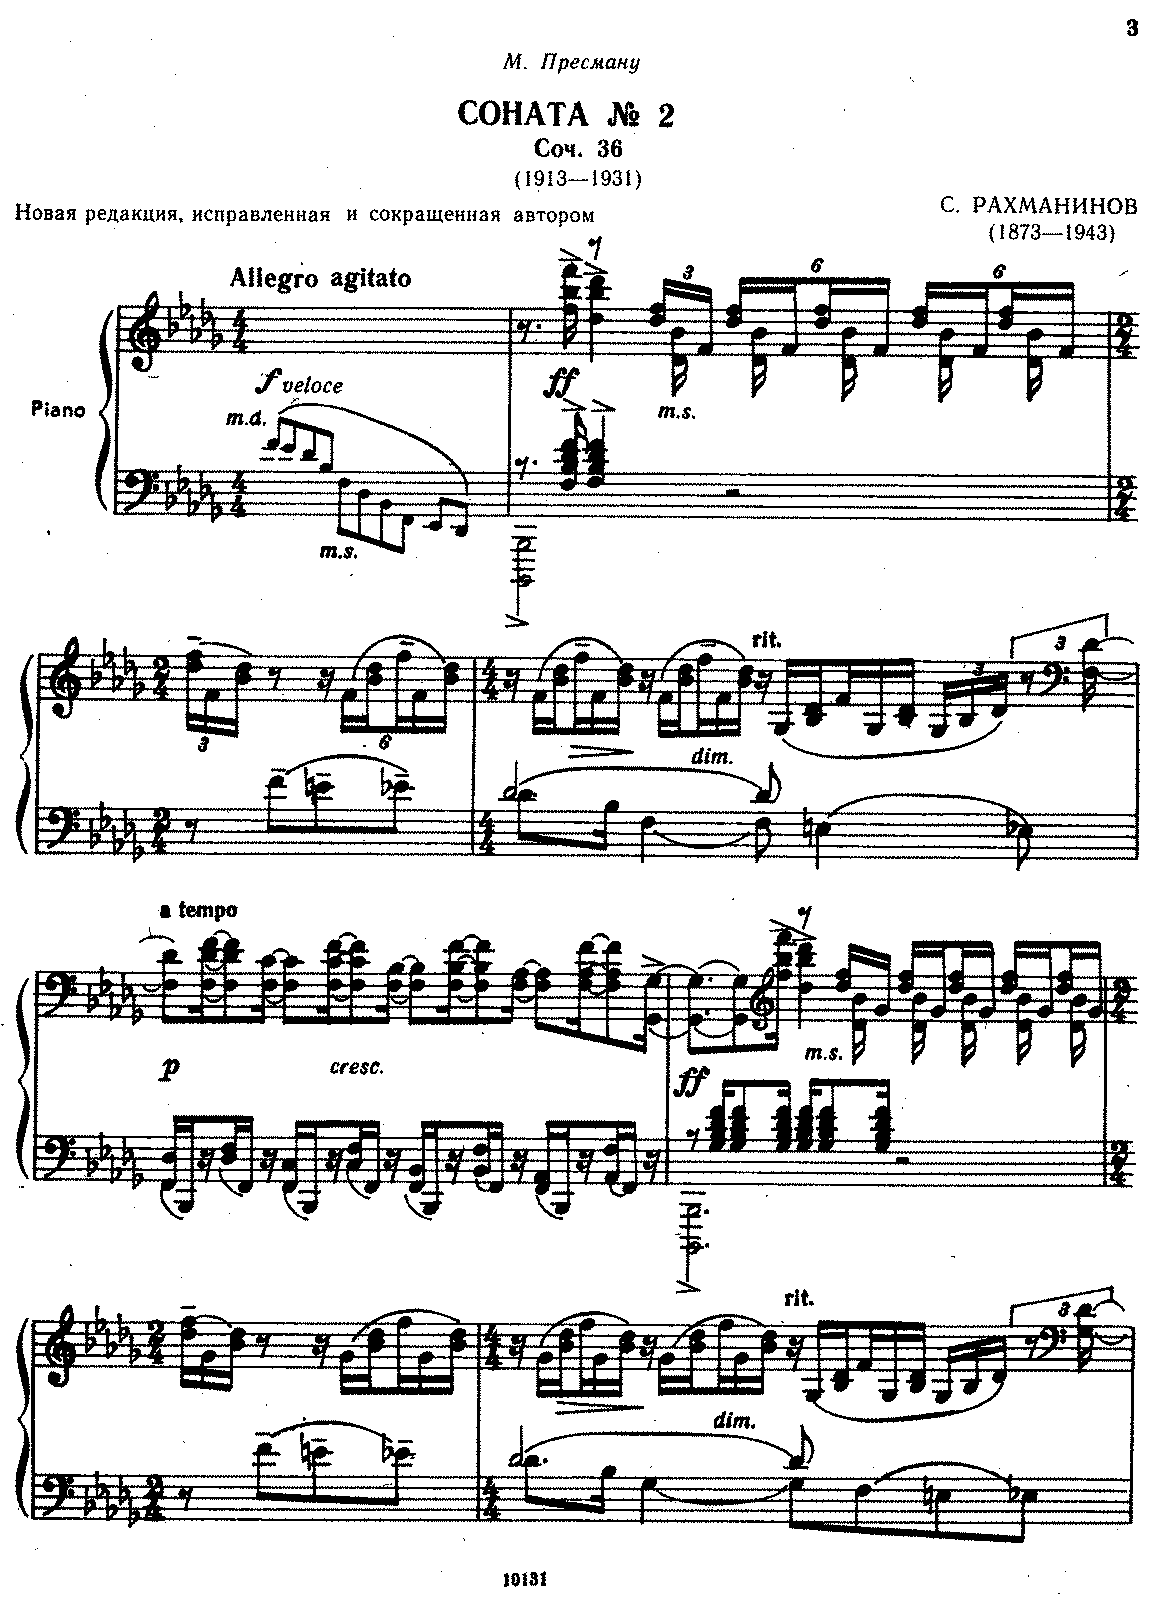 Rachmaninoff - Sonata No 2 in B Flat Minor Op 36.pdf